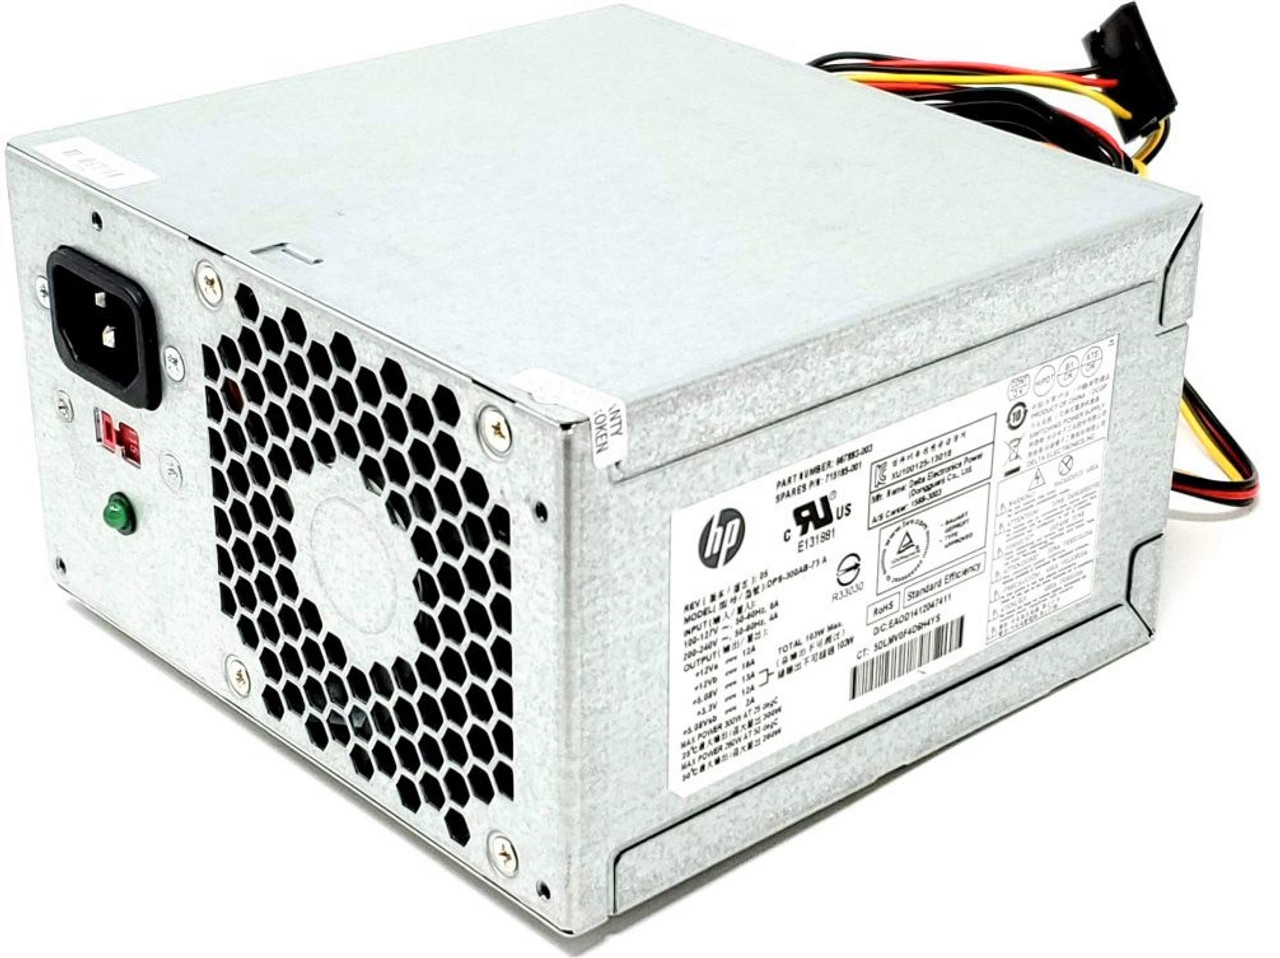 New PC Power Supply Upgrade for HP Pavilion 500-510t CTO Desktop Computer